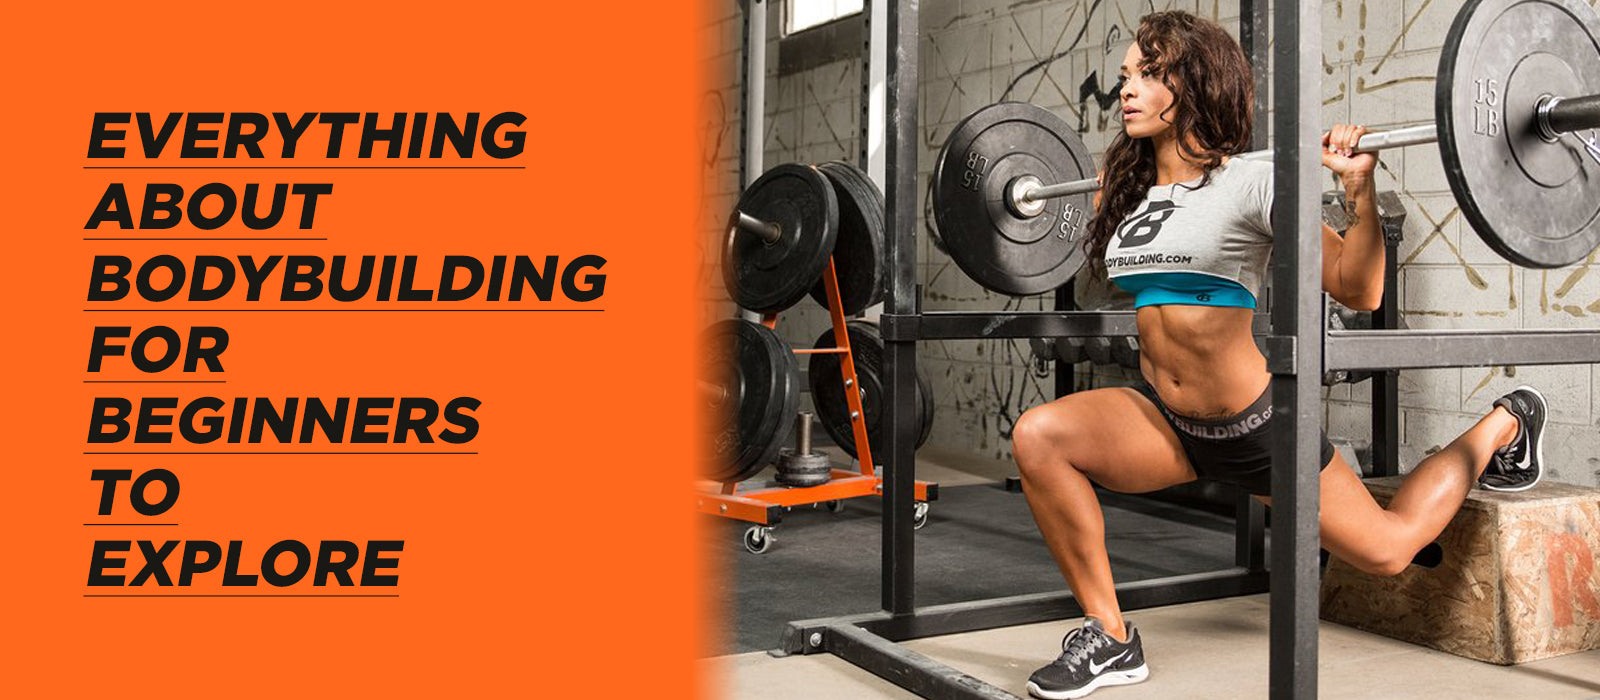 Everything About Bodybuilding For Beginners To Explore